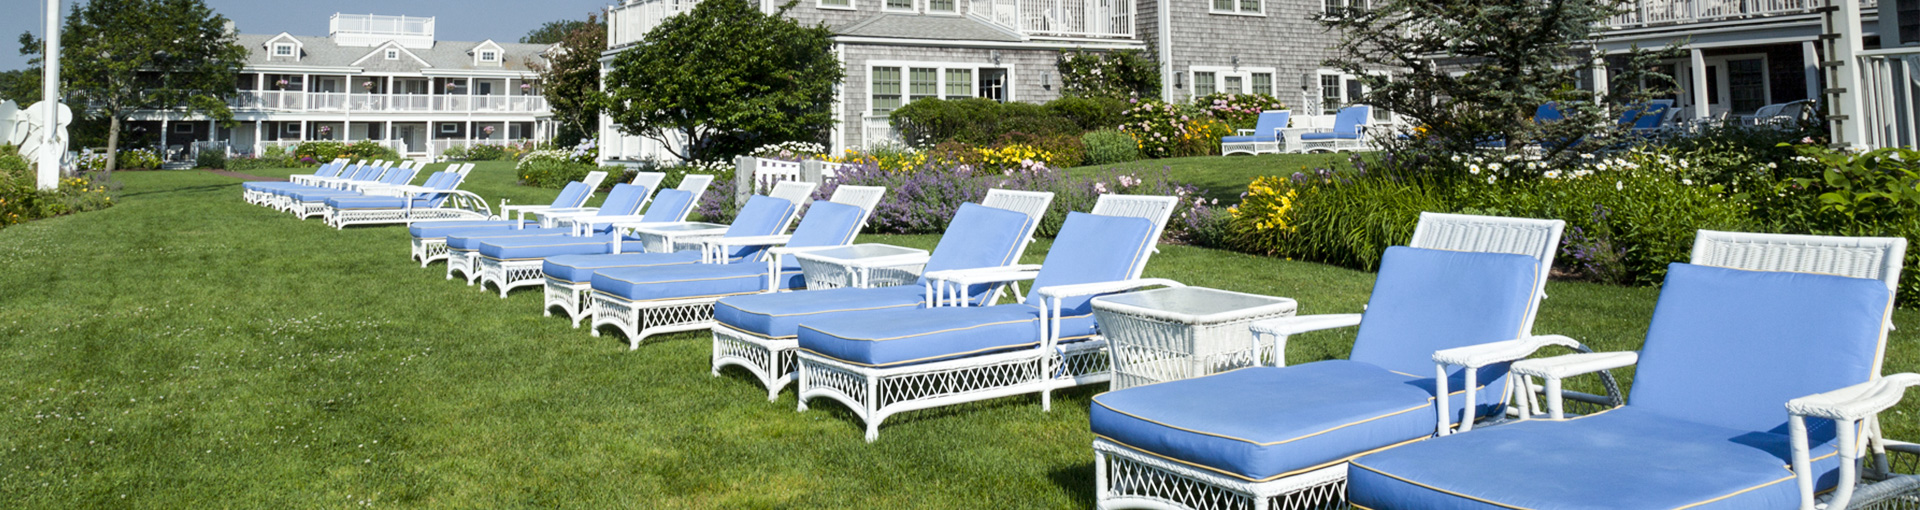 Experiences at White Elephant Resorts, Nantucket